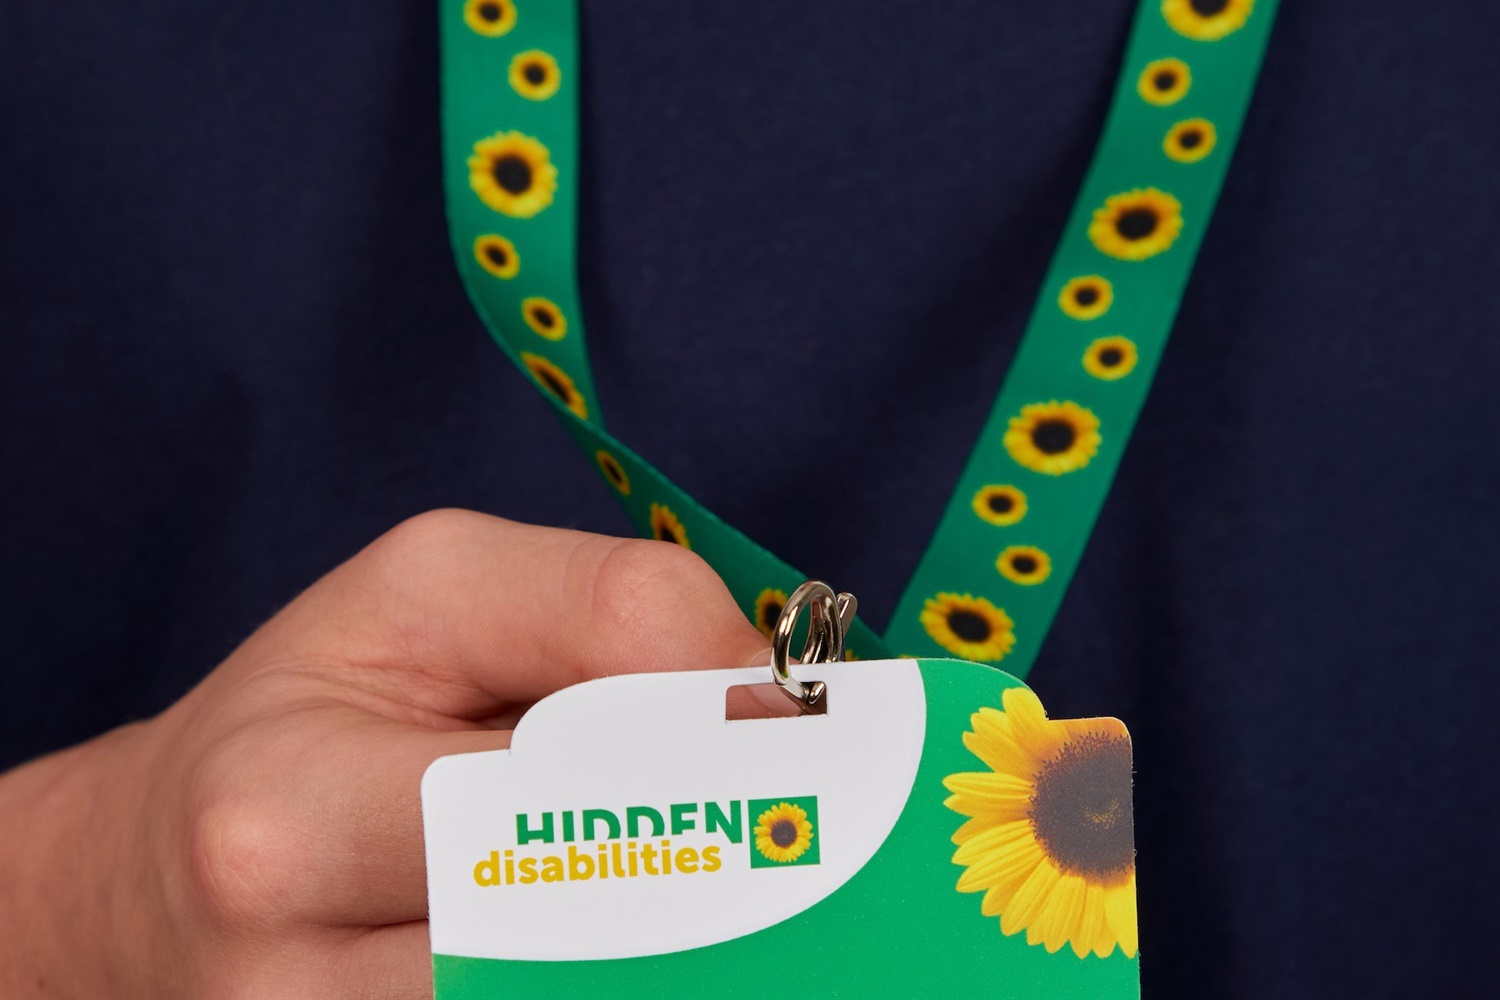 All of Britain's rail companies to adopt Sunflower lanyard scheme